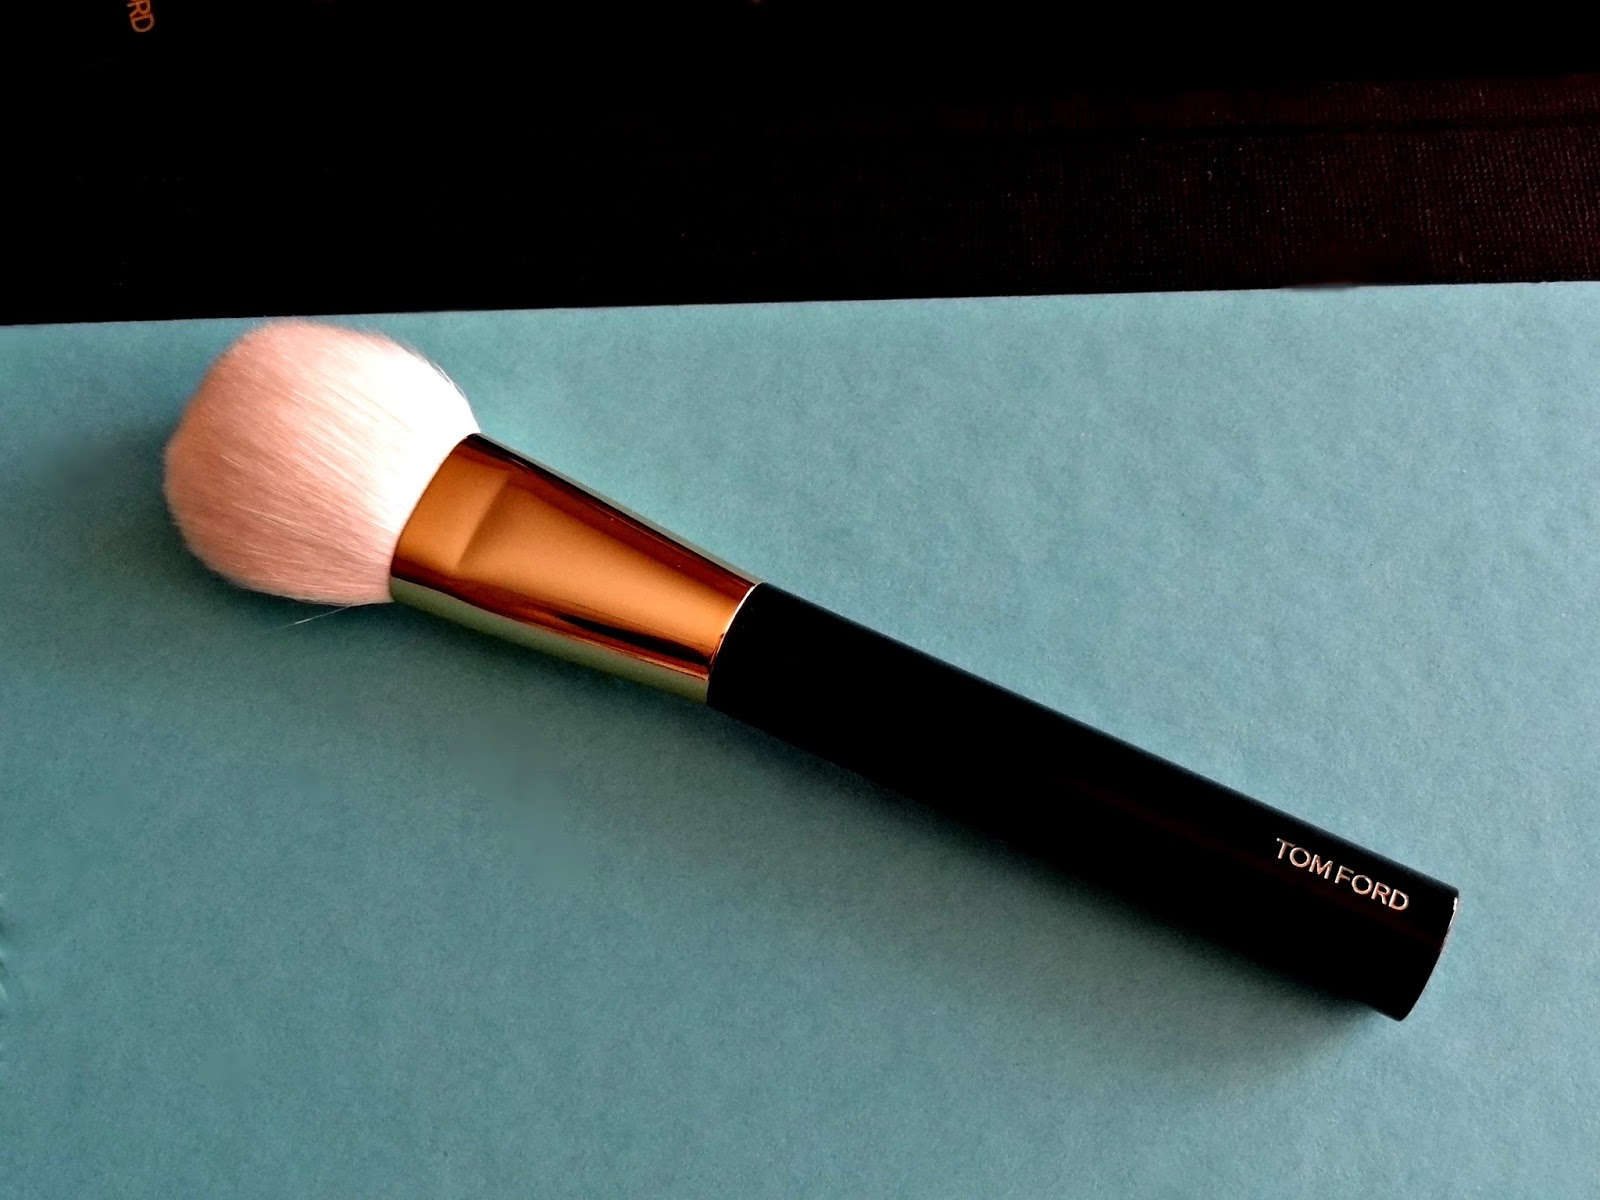 Tom Ford Cheek Brush Review